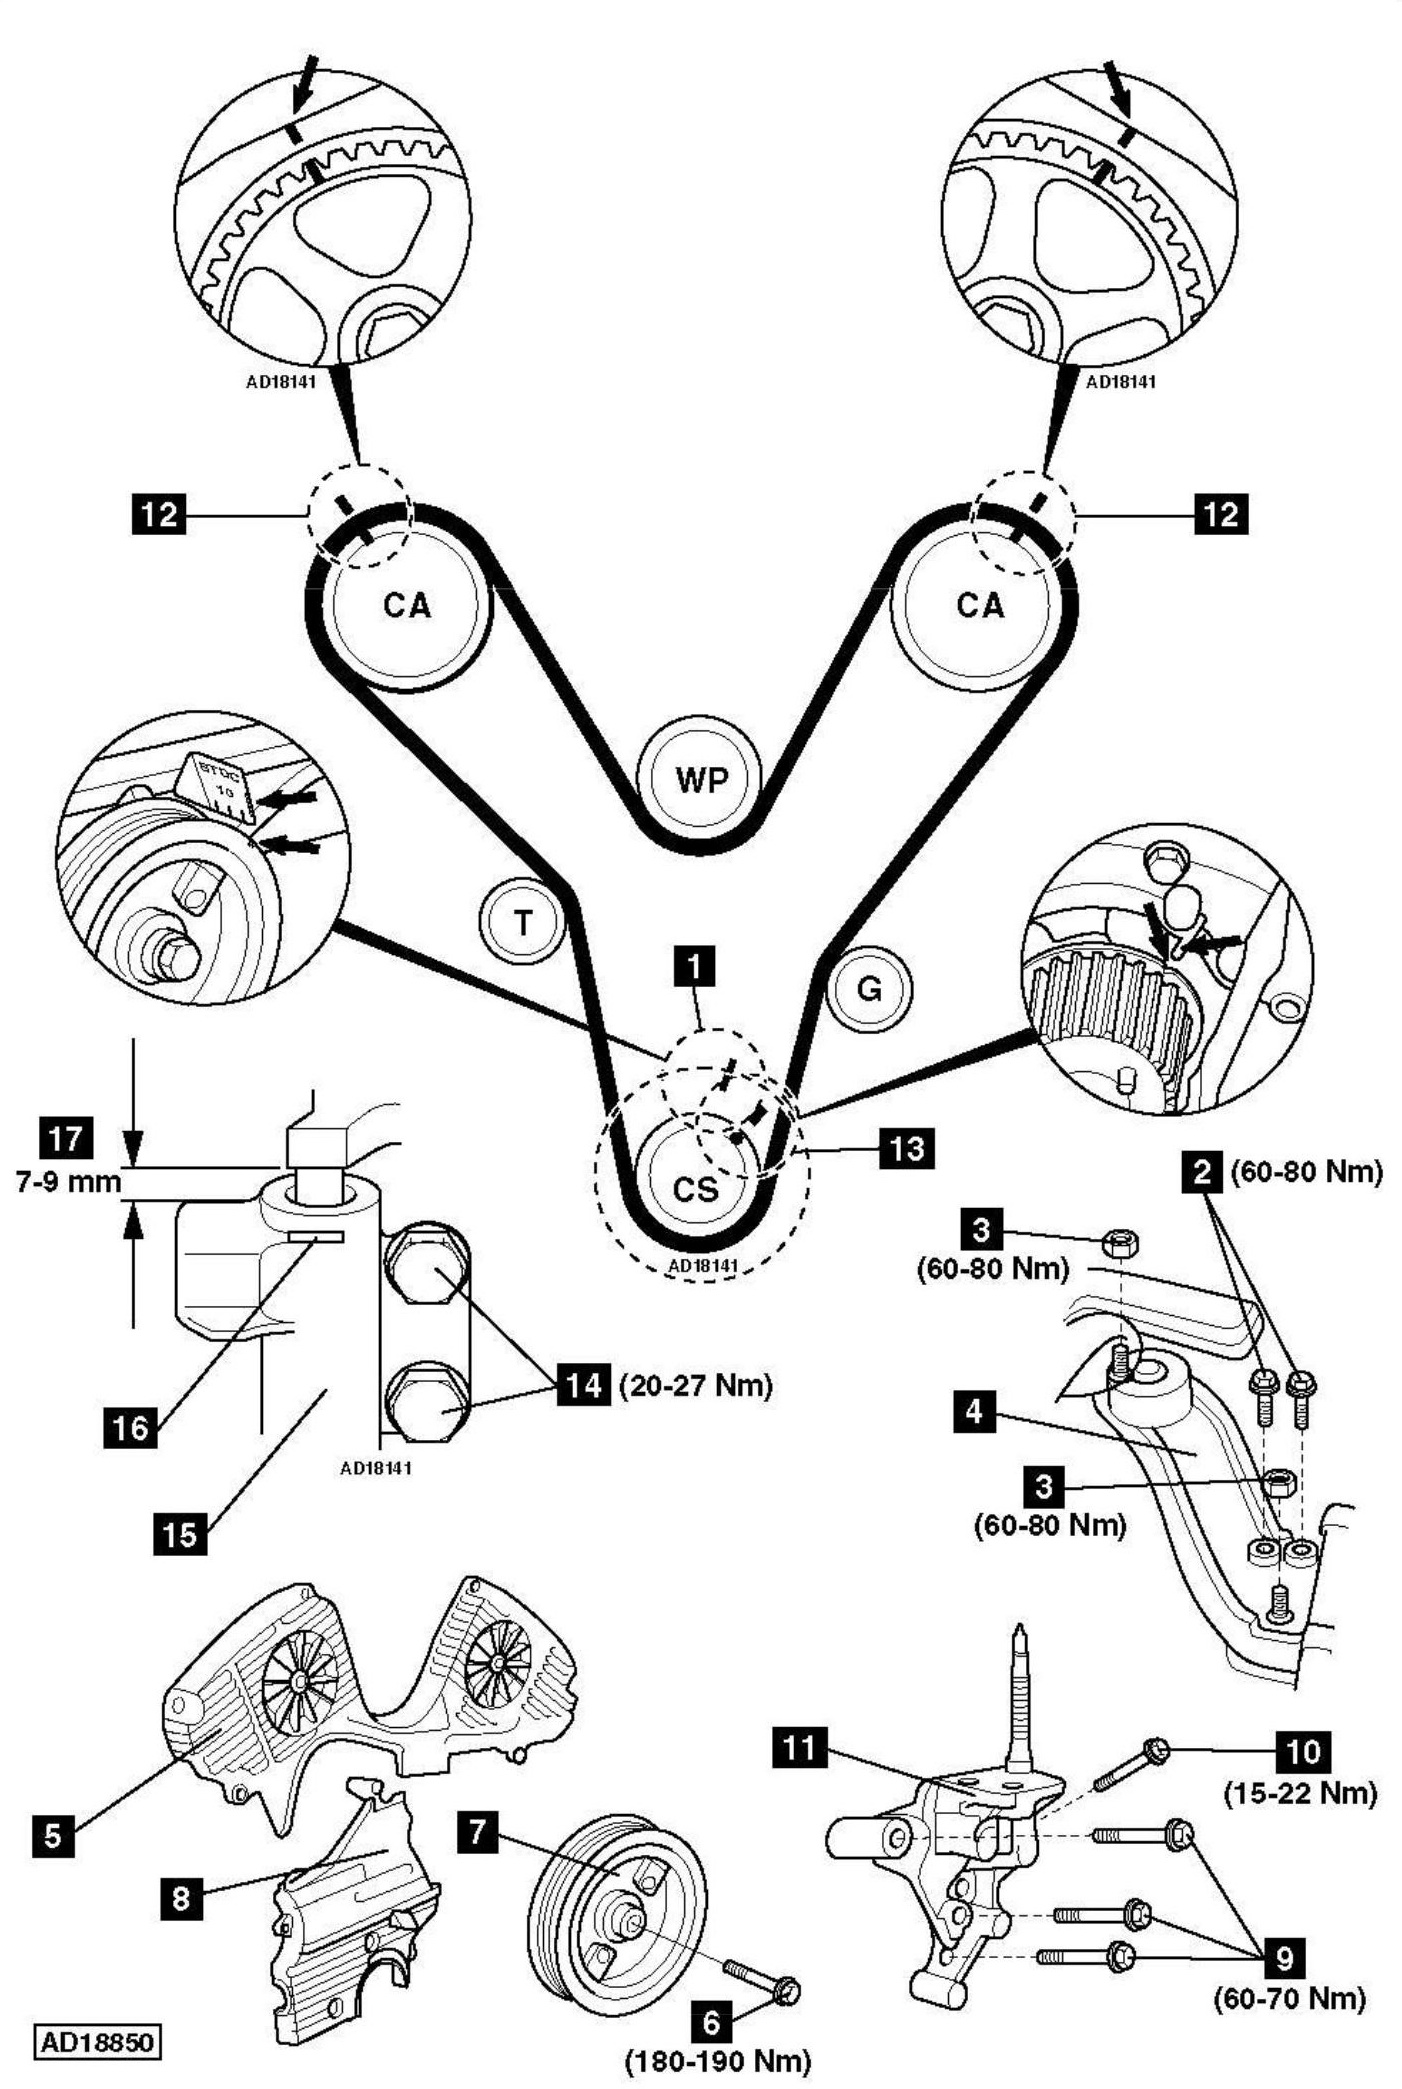 2006 Saturn Vue Starter Wiring Diagram Trusted Diagrams 2008 Outlook Fuse Box 2013 Hyundai Sonata Auto 2003 2002